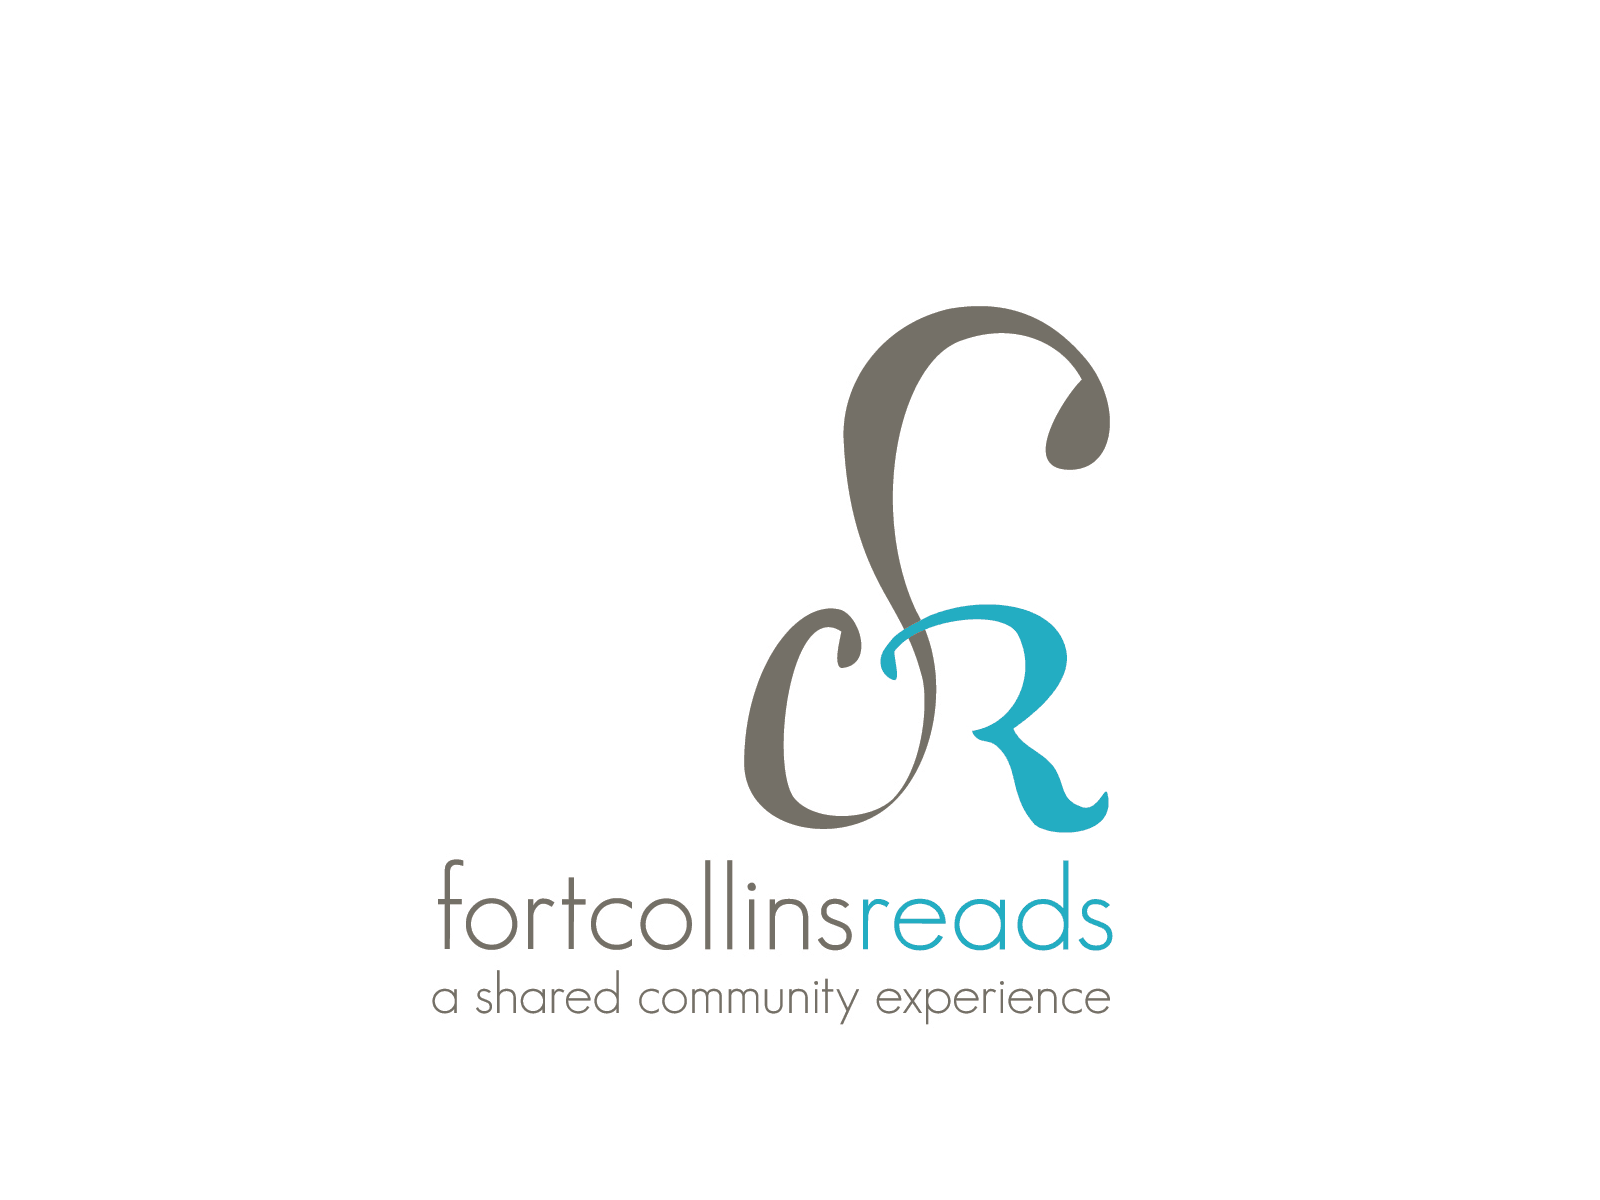 Logo concept for Fort Collins Reads in color and black and white.